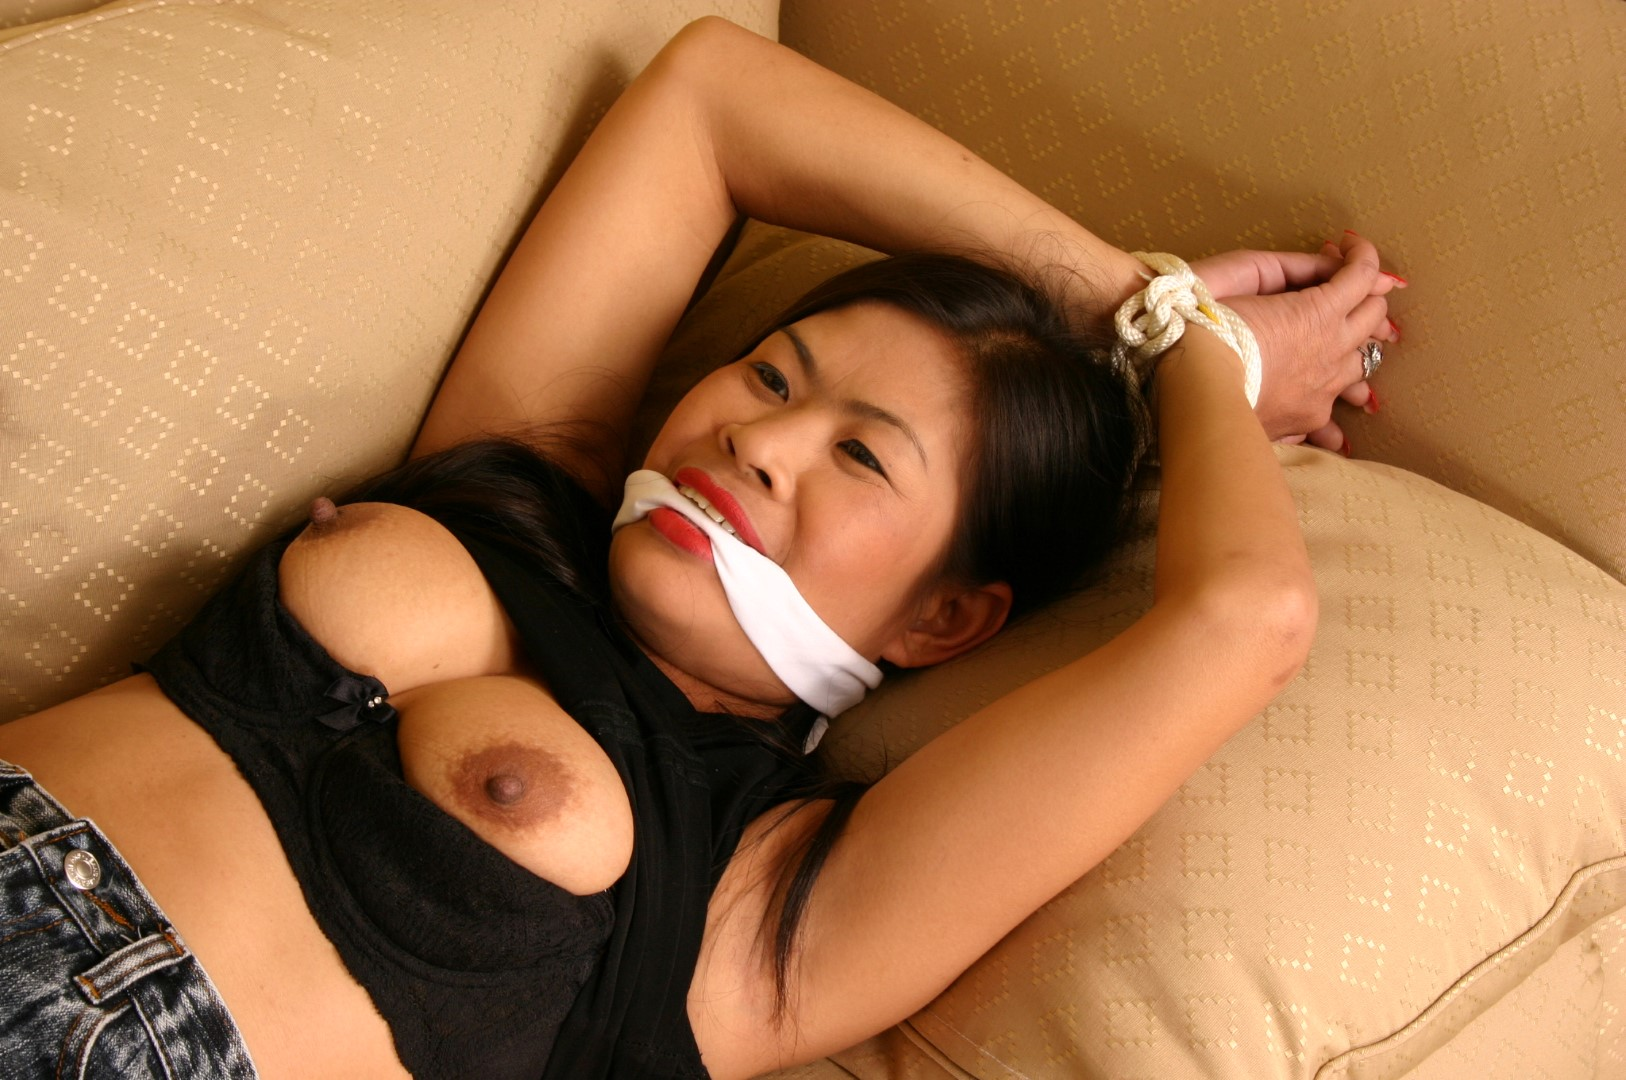 Simply matchless free asian bondage pic happens. Let's